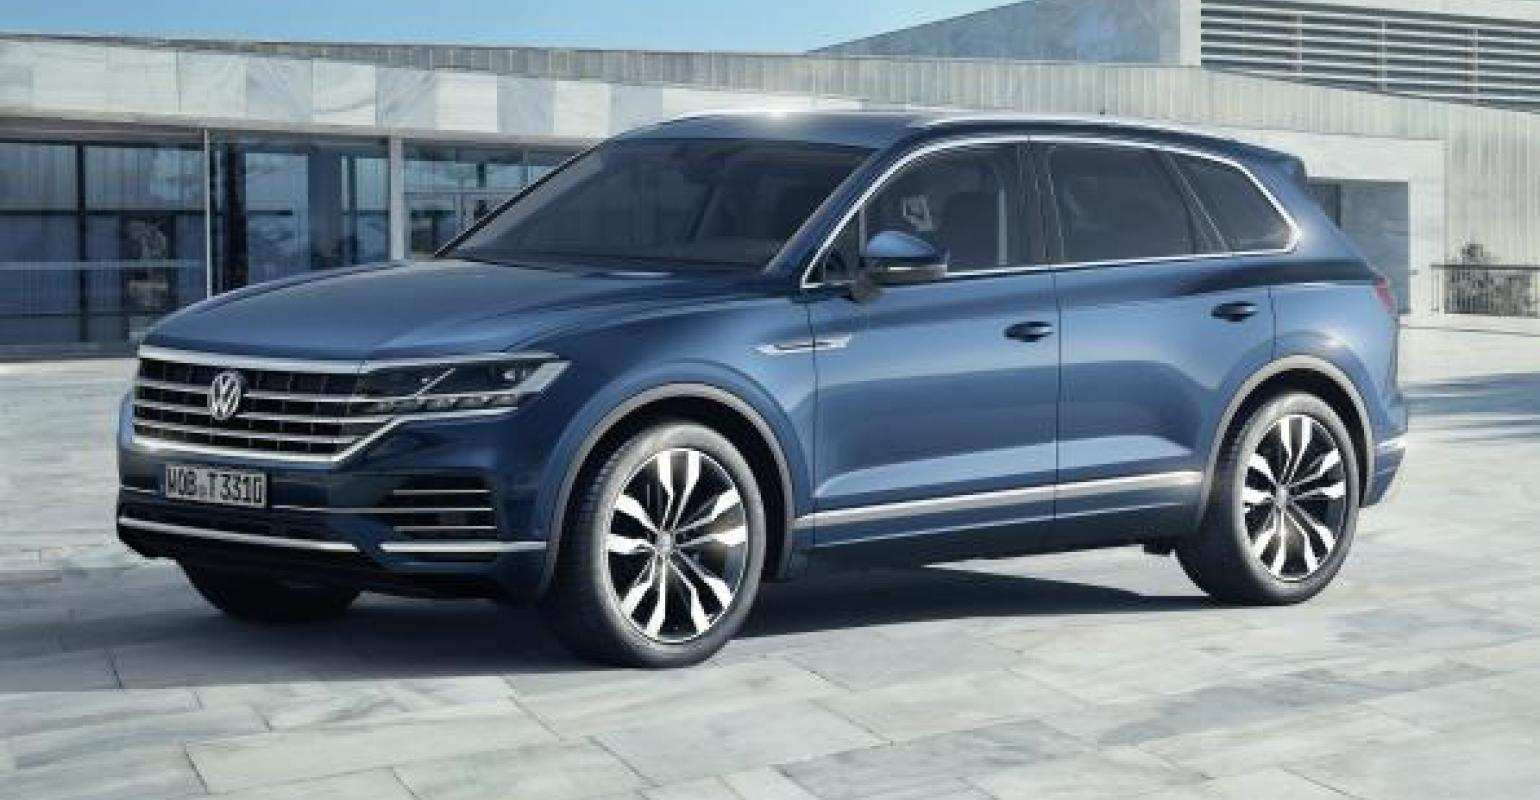 53 Great Touareg VW 2020 New Concept for Touareg VW 2020